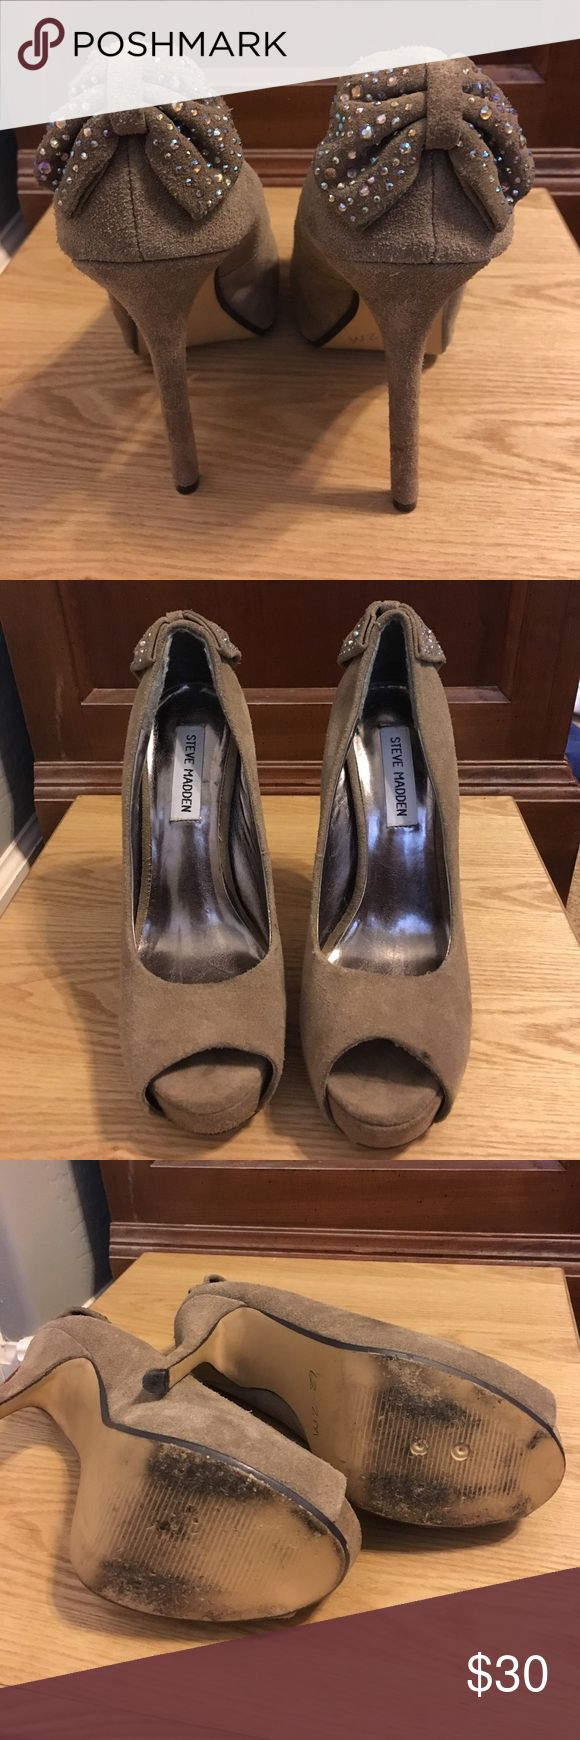 Suede Steve Madden high heels I've only worn these a few times but they got scuffed up, need some cleaning, but still in good condition. They are a grey champagne color. Steve Madden Shoes Heels